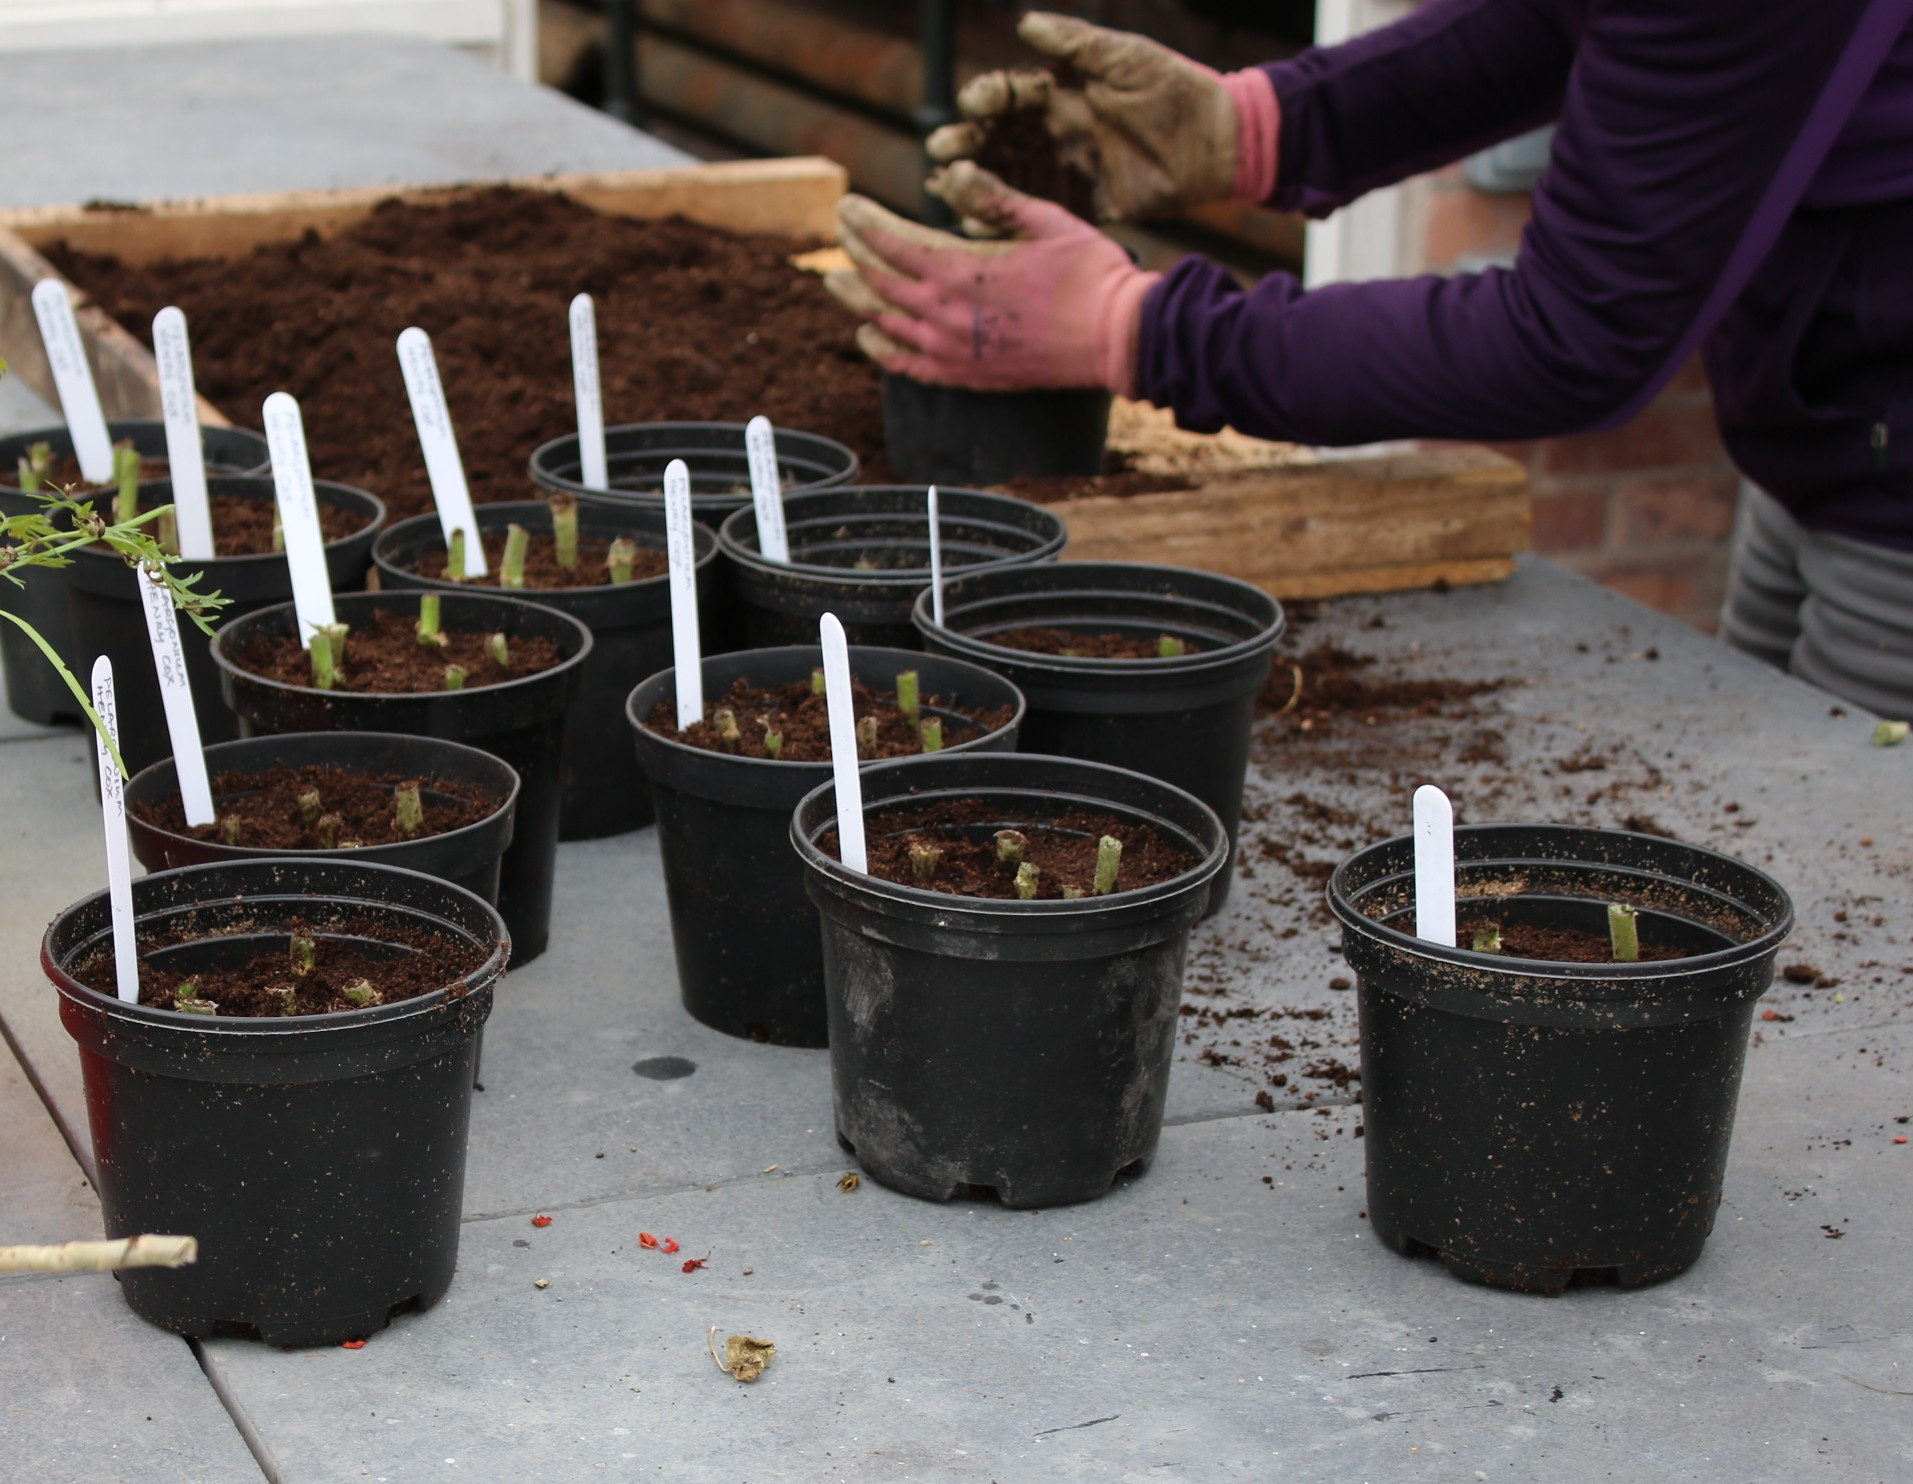 Potting and labeling the cuttings